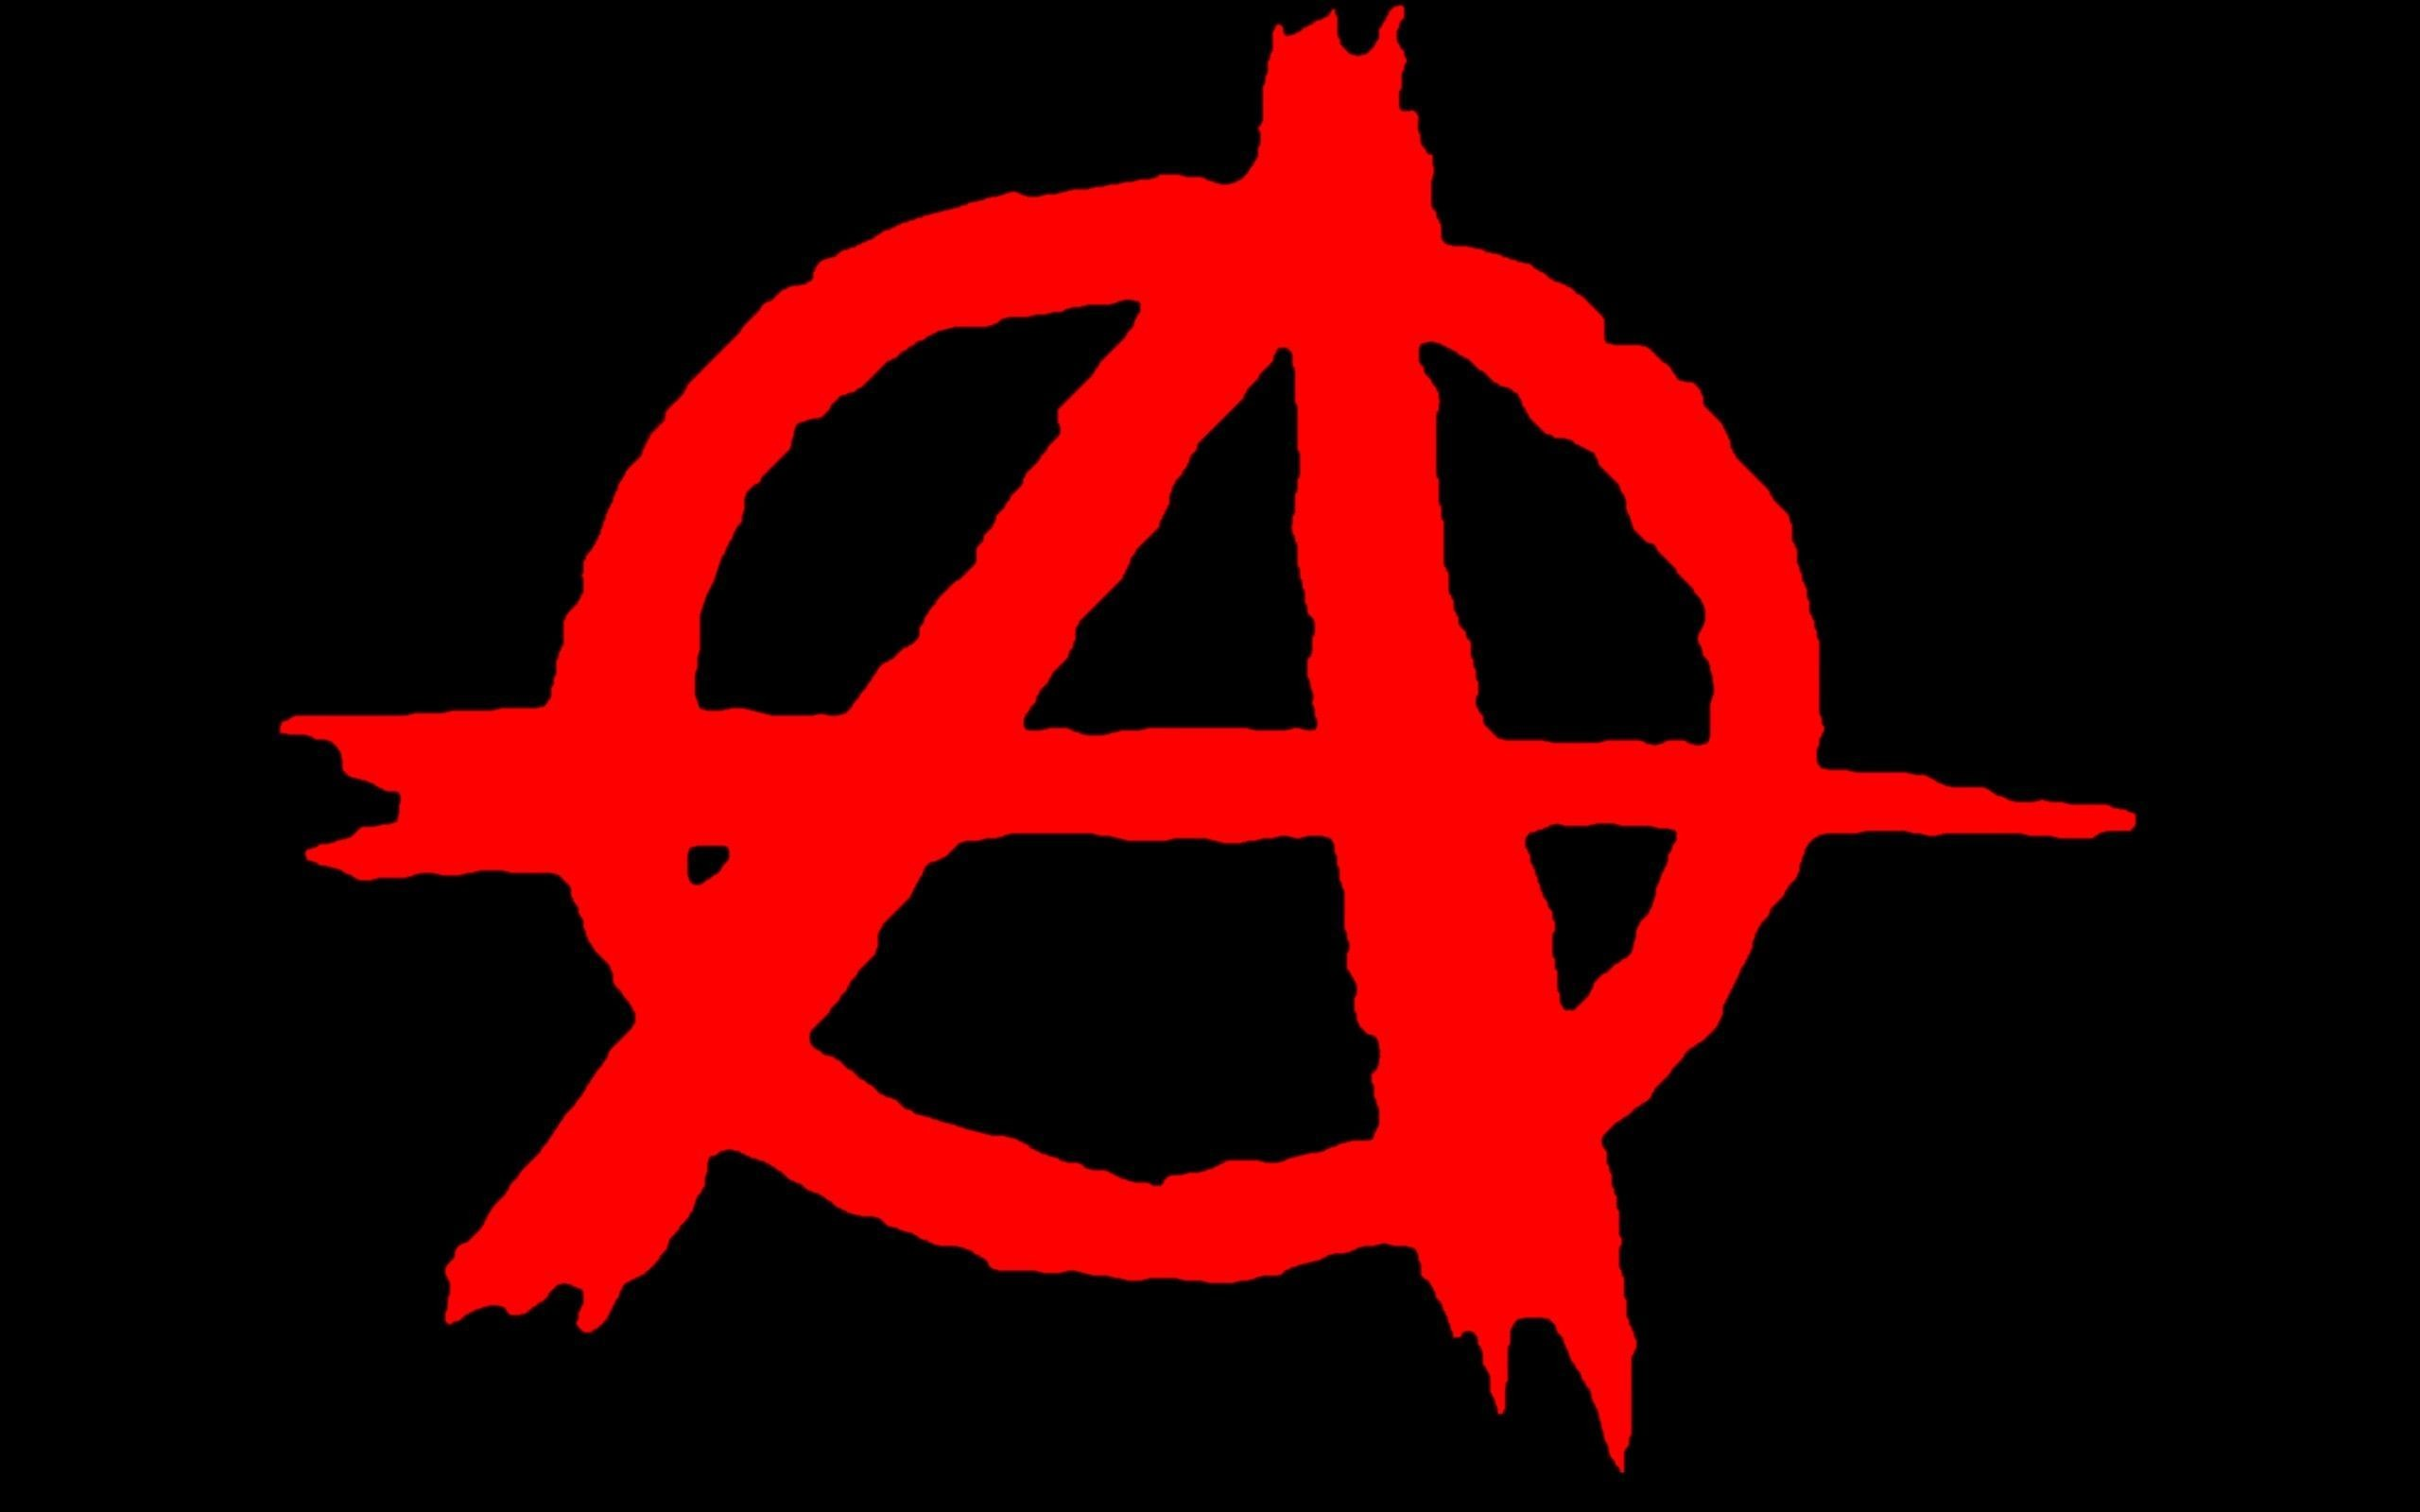 Res: 2560x1600, Anarchy Symbol Wallpapers - Wallpaper Cave